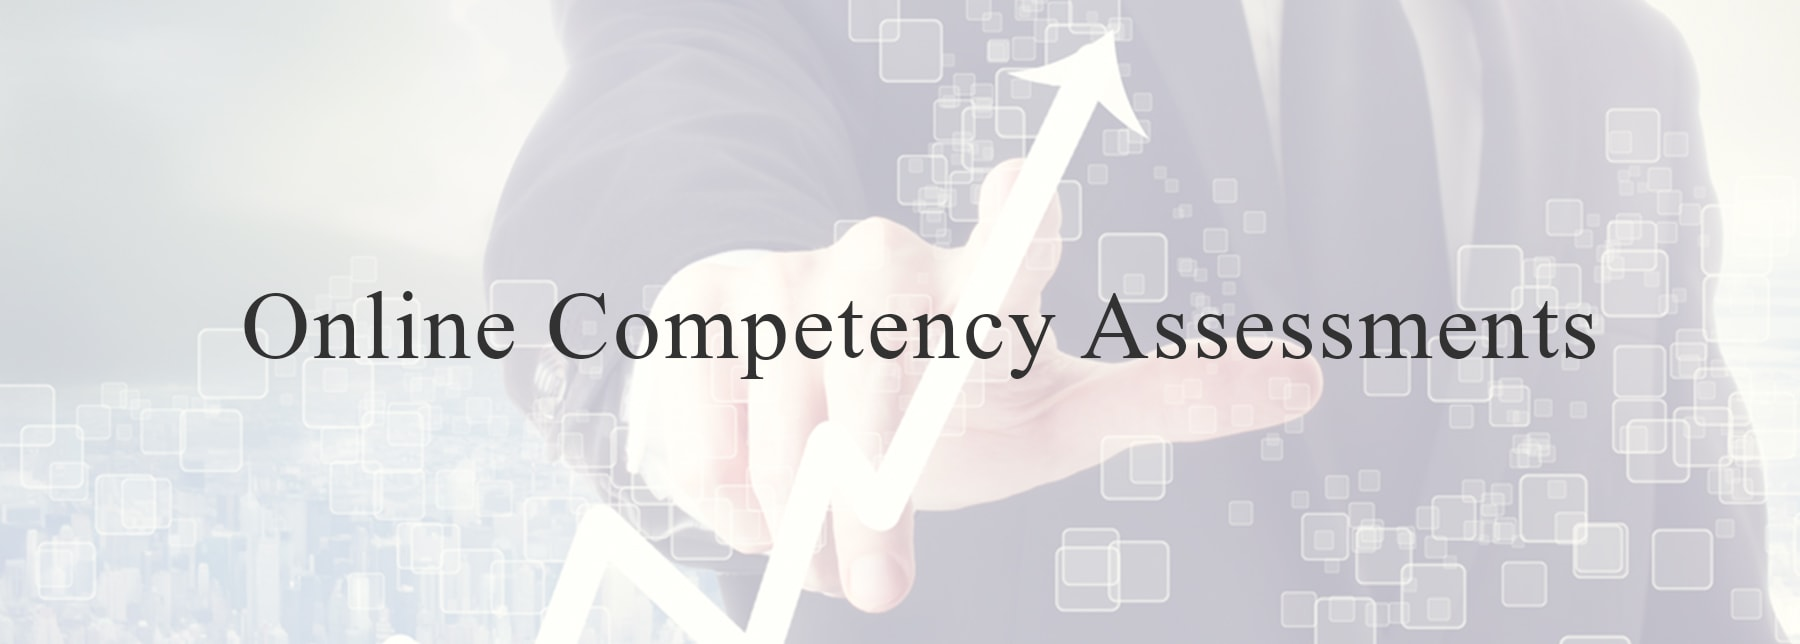 Online Competency Assessments